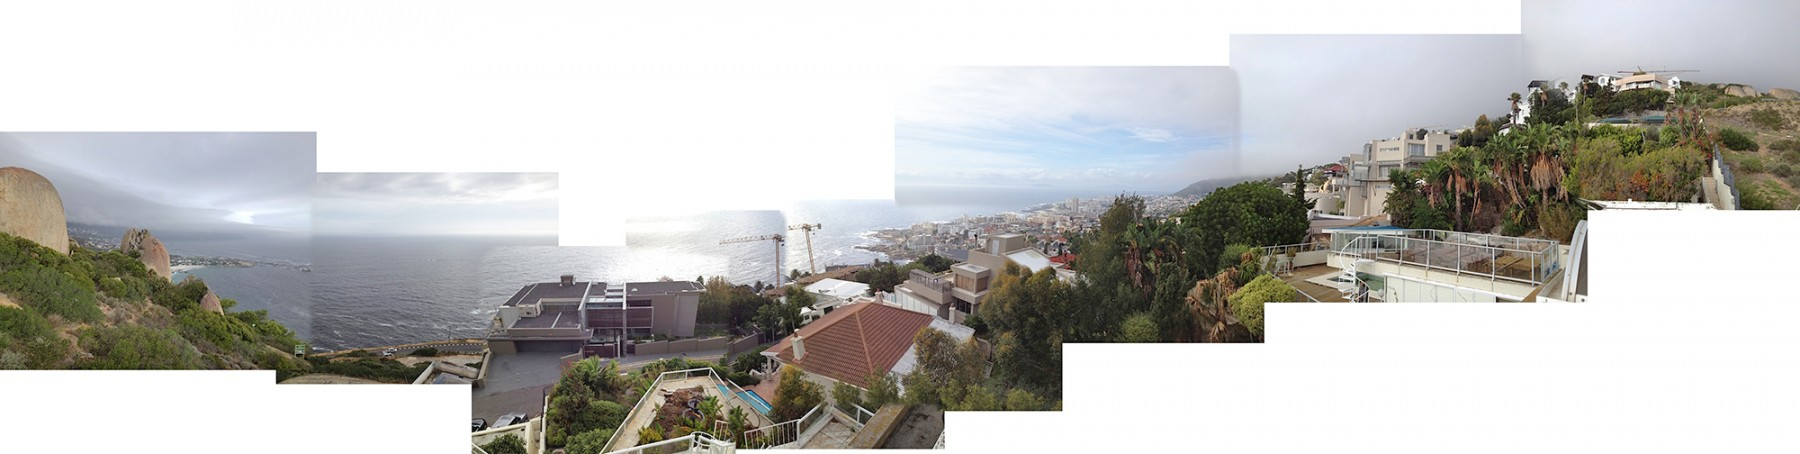 Gain-Draper-House-contemporary-modern-Cape-Town-residential-home-Jamie-Fobert-Architects-panorama